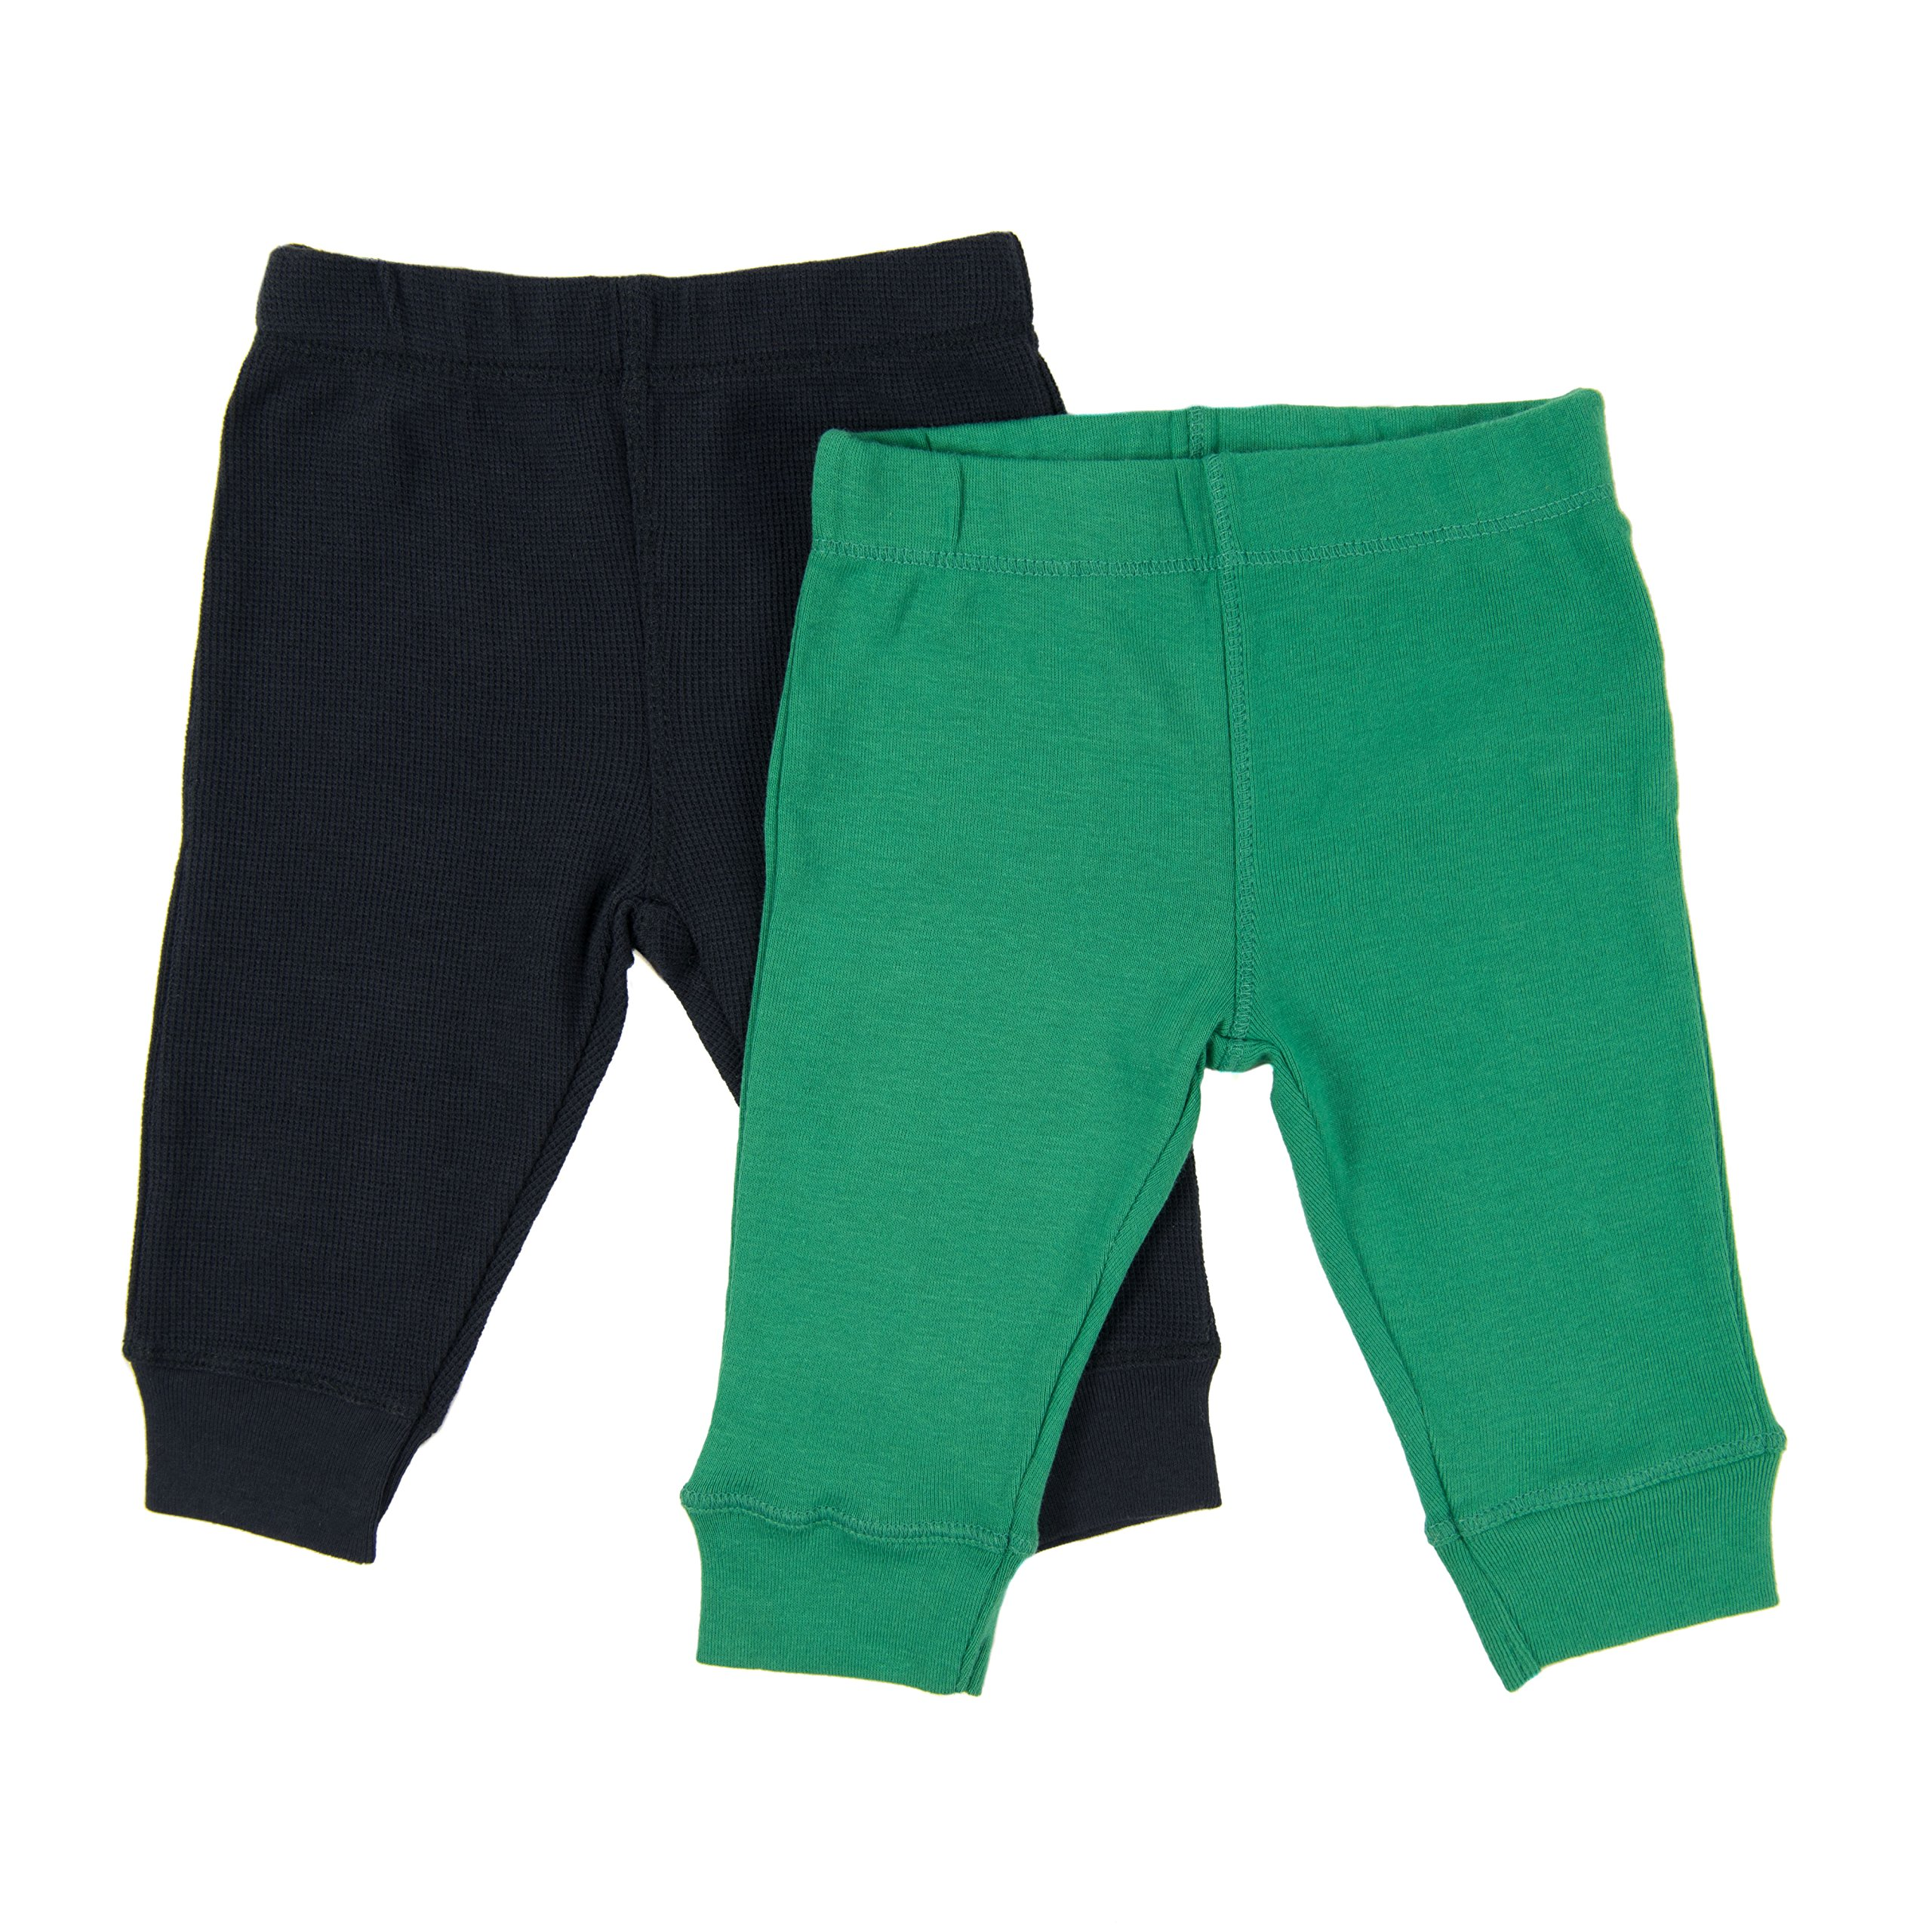 Leveret Solid Baby Crawling Pants & Legging Set Kids Baby Pants (Size 3-24 Months) Variety of Colors